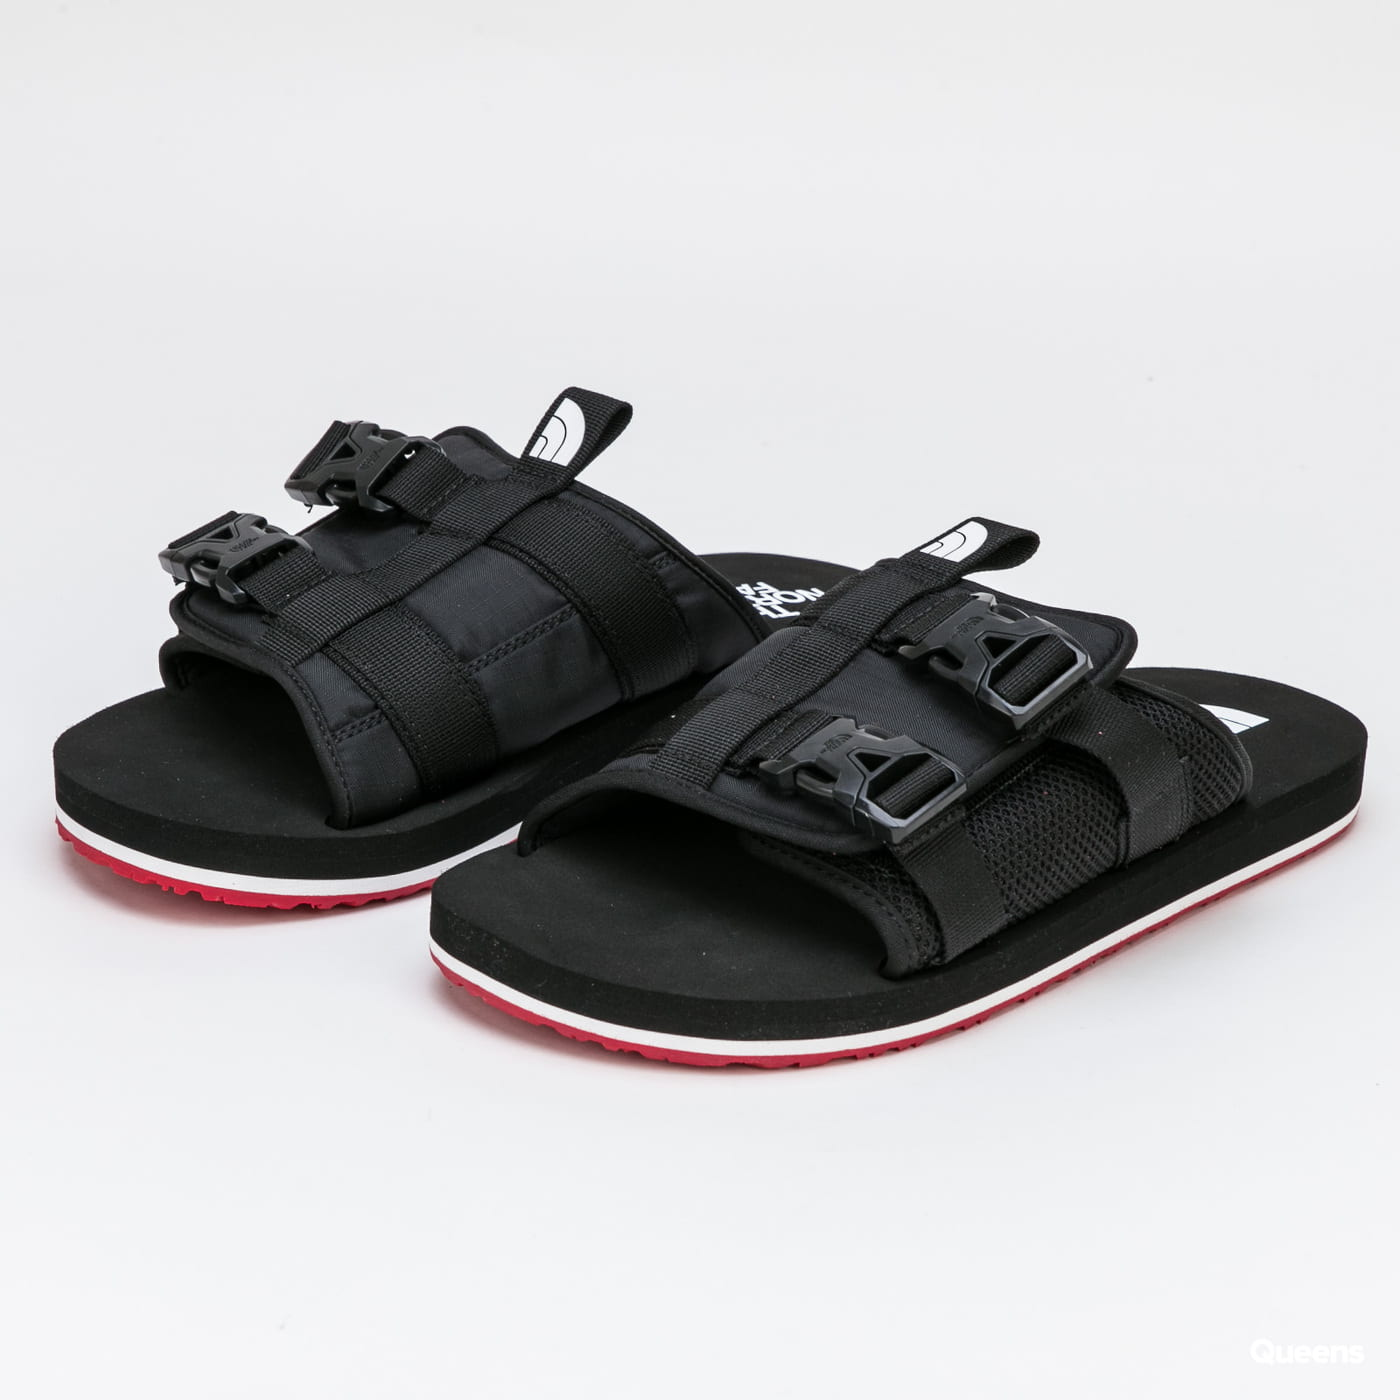 The North Face Men's EQBC Slide tnf black / fiery red